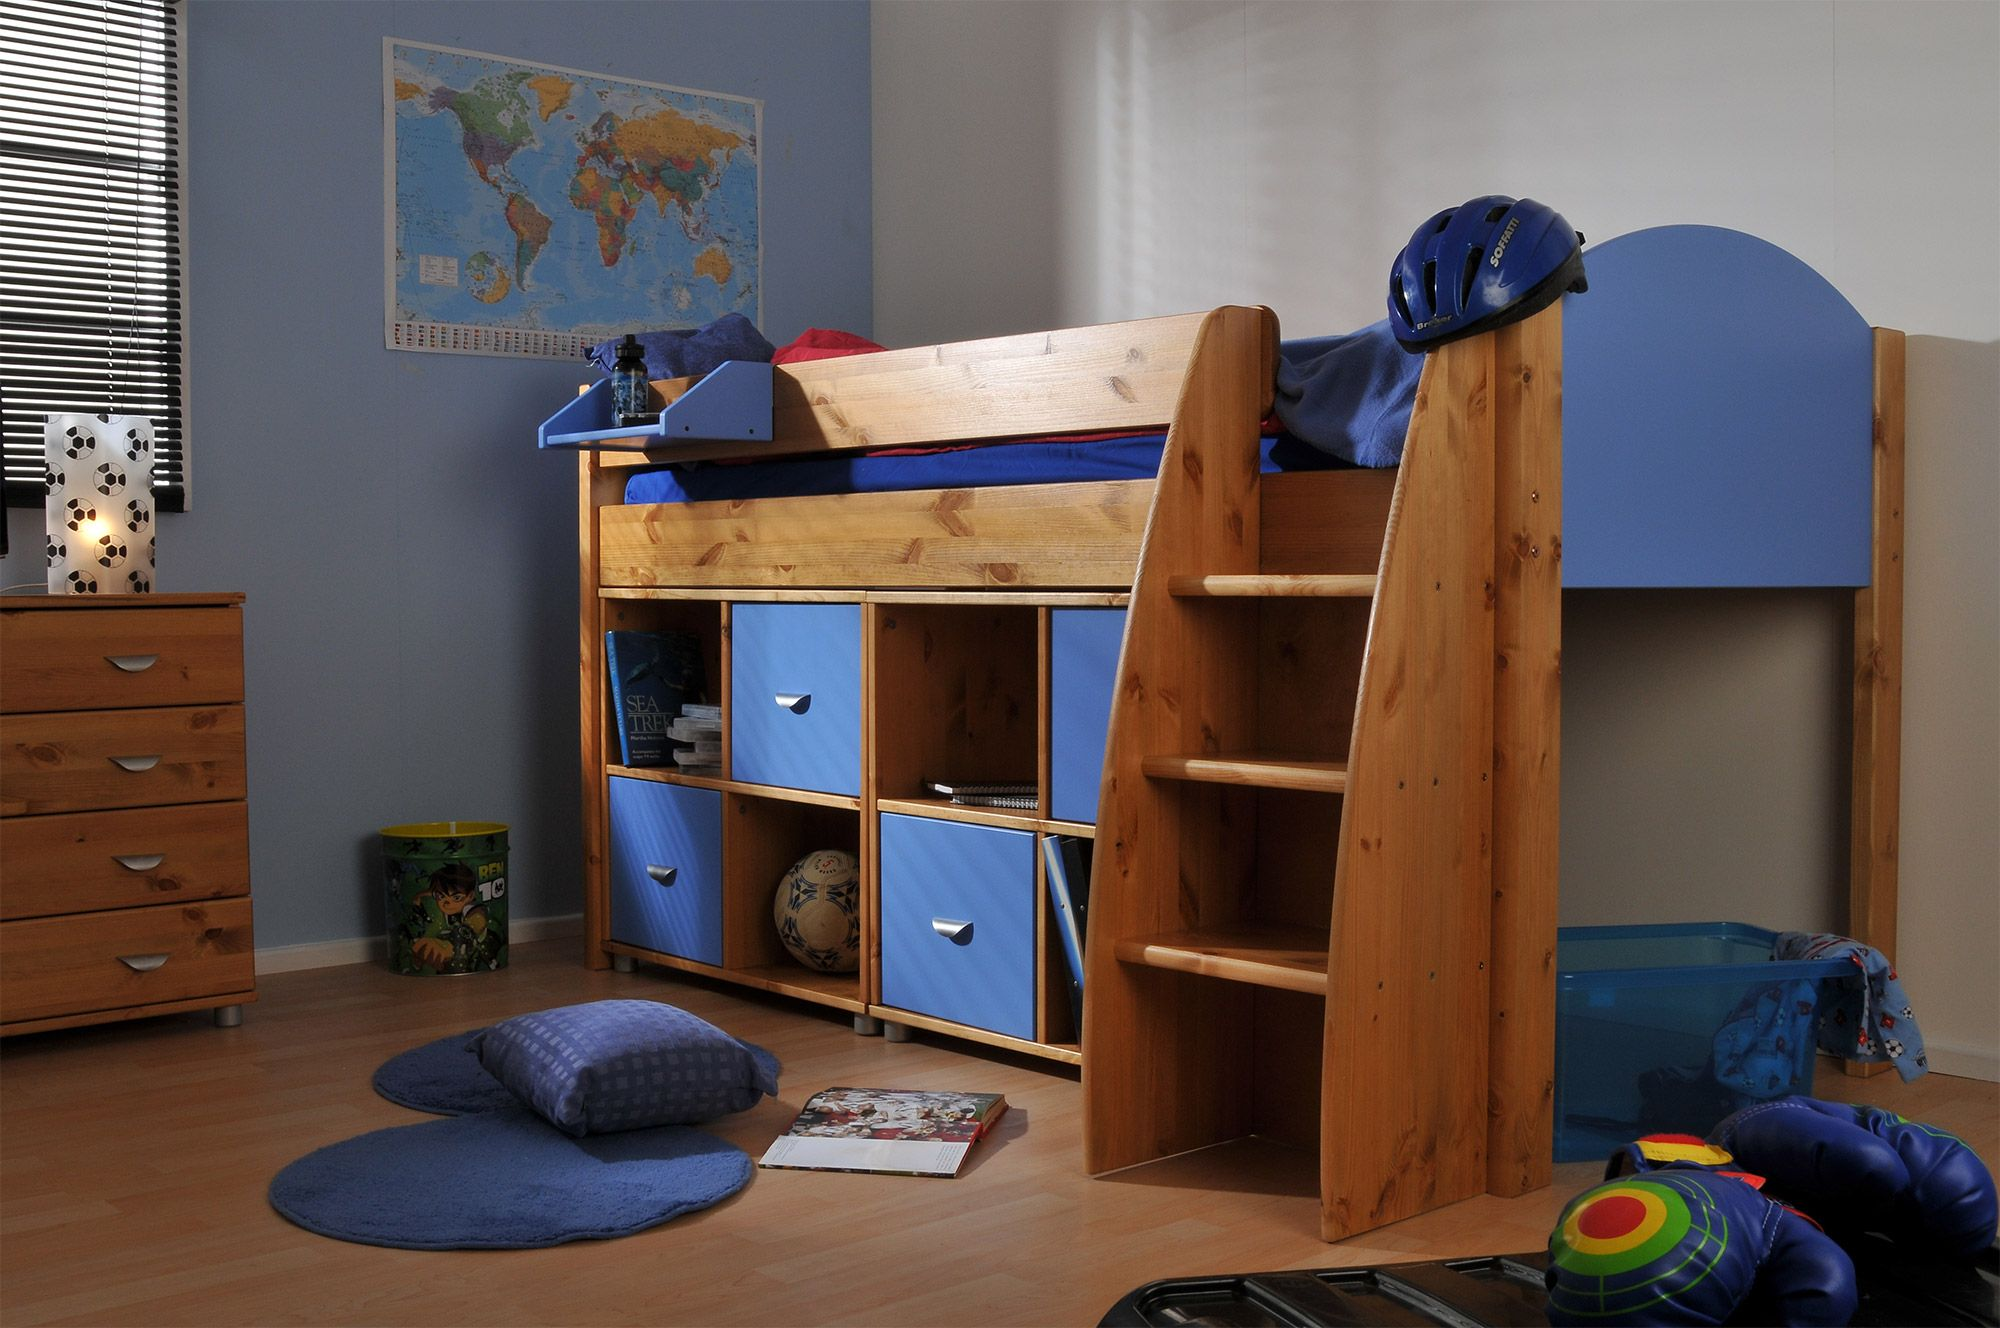 Boys\u0027 Stompa Rondo Cabin Bed - A great solid space saving cabin bed for any boy. Easy to climb steps and spacious under bed storage. & Stompa Rondo 6 Cabin Bed | Inspiration: boys beds | Pinterest | Bed ...